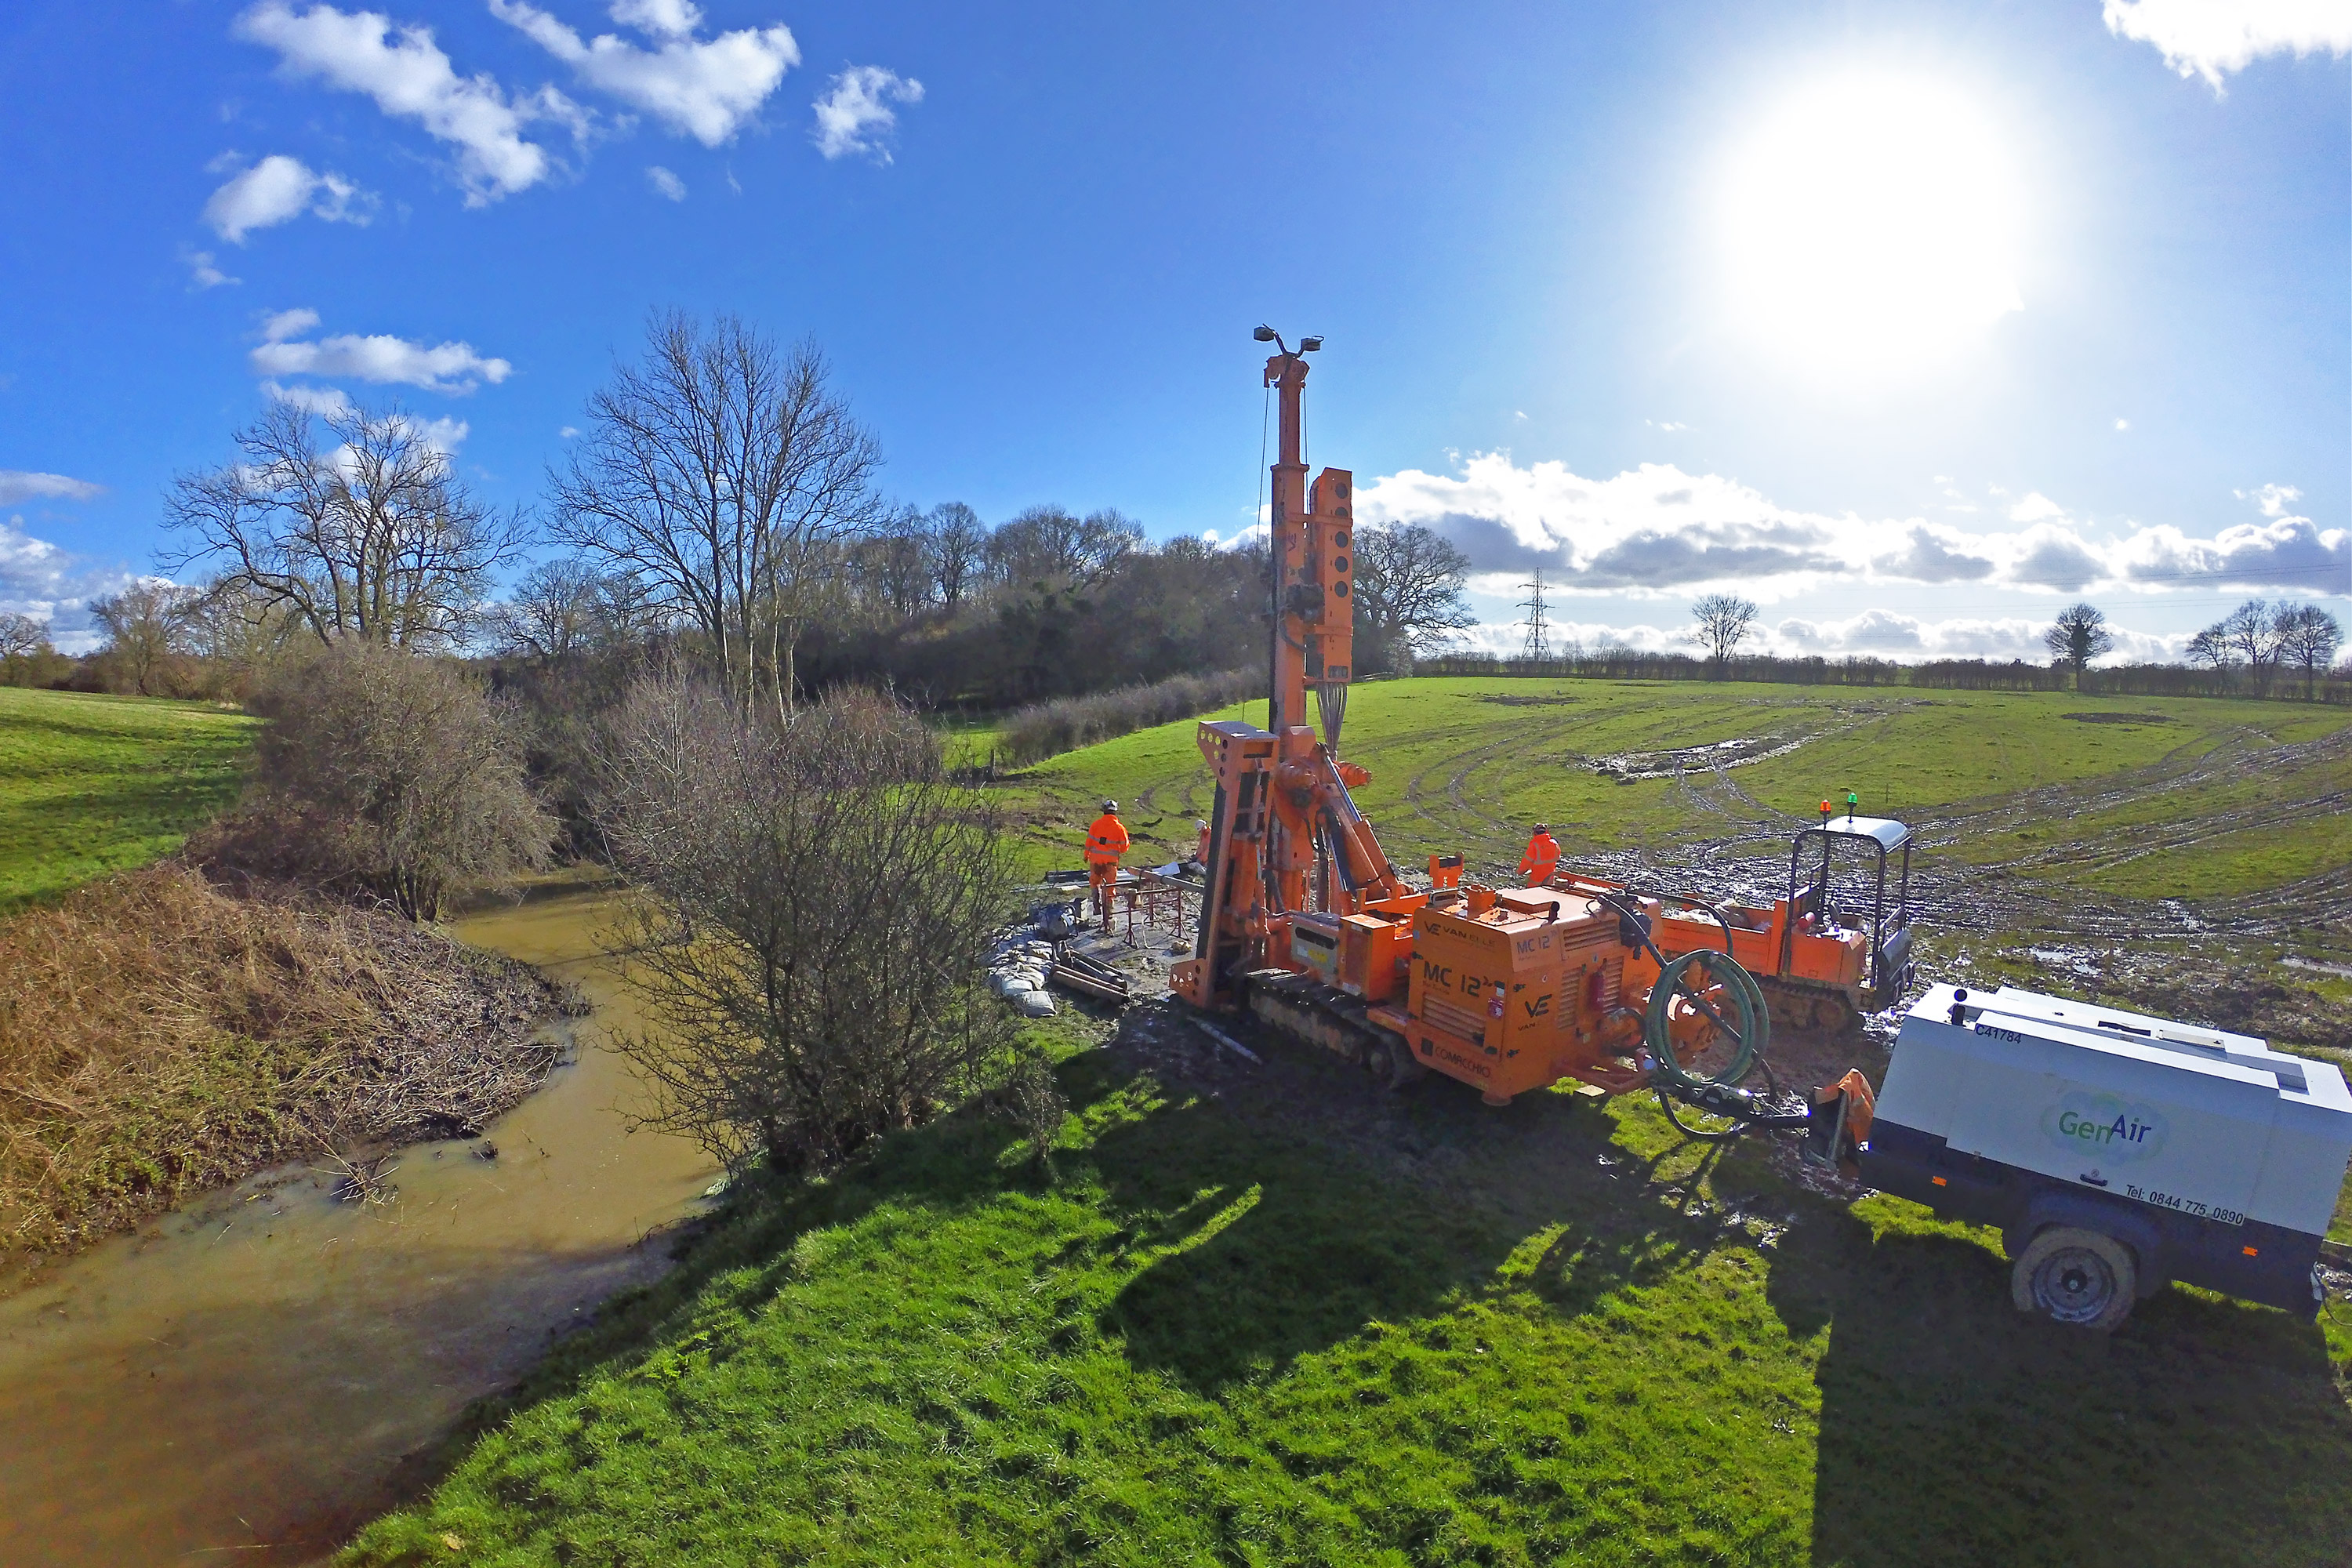 Geotechnical strategy captured through rain and shine!